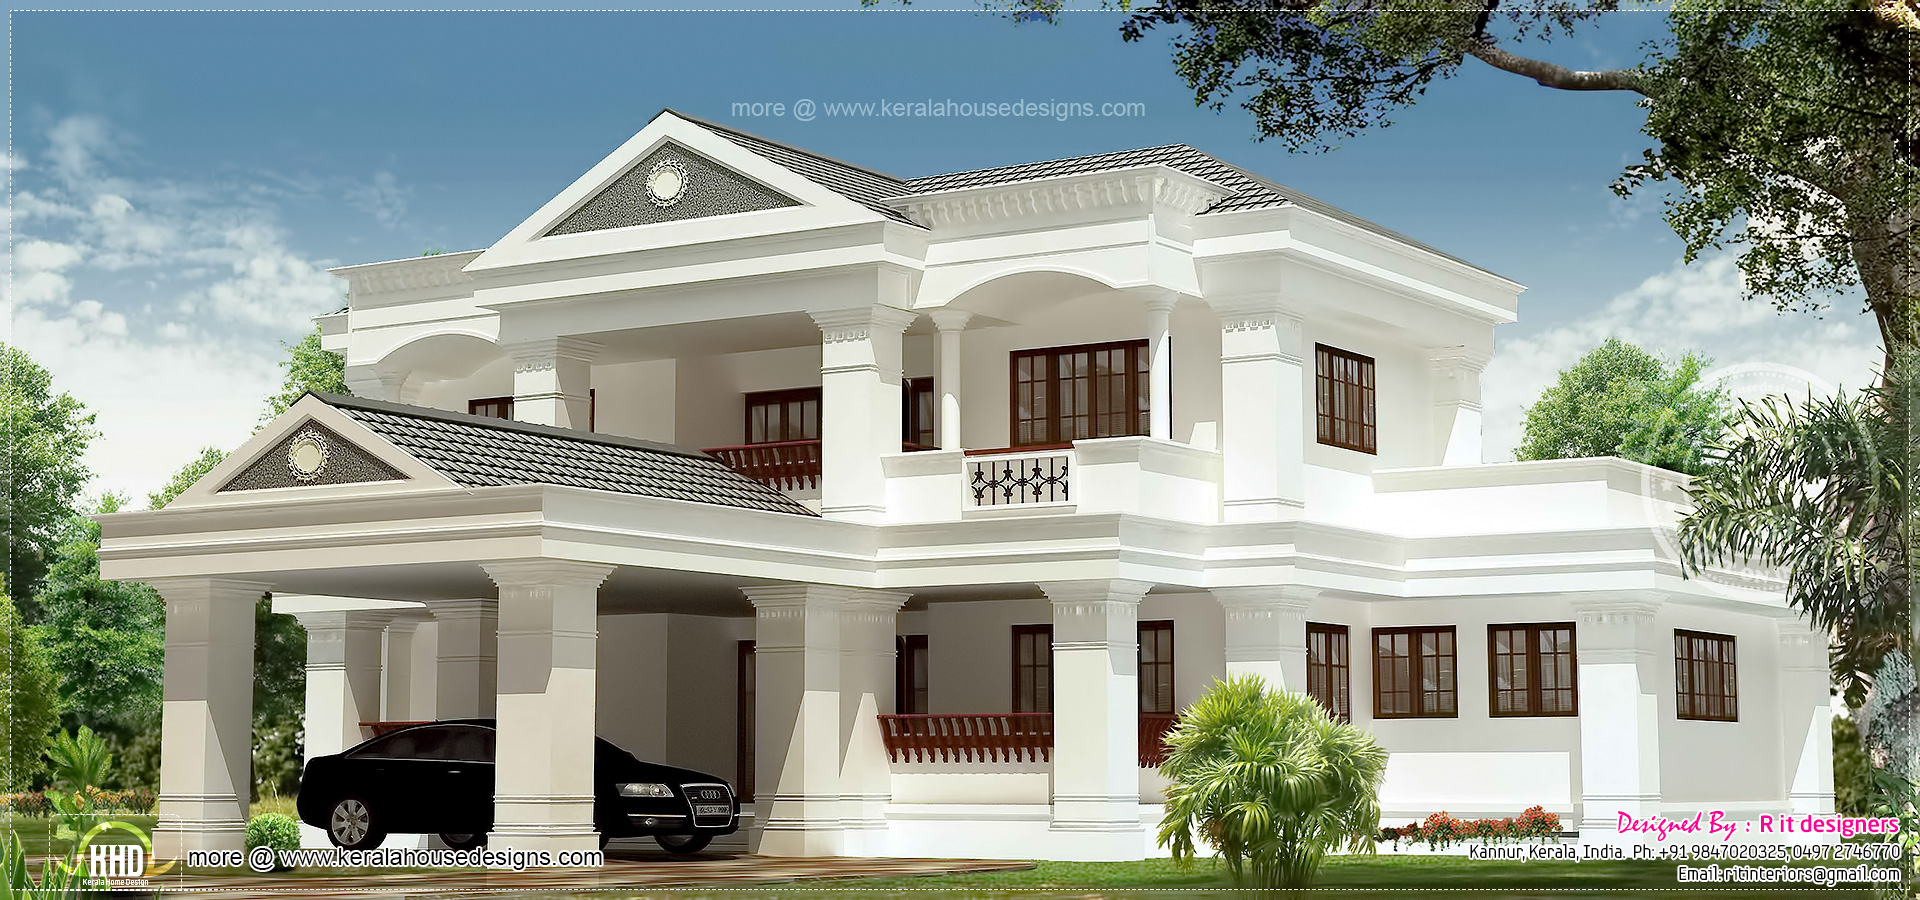 3100 luxury 5 bhk villa exterior kerala home Pictures of exterior home designs in india